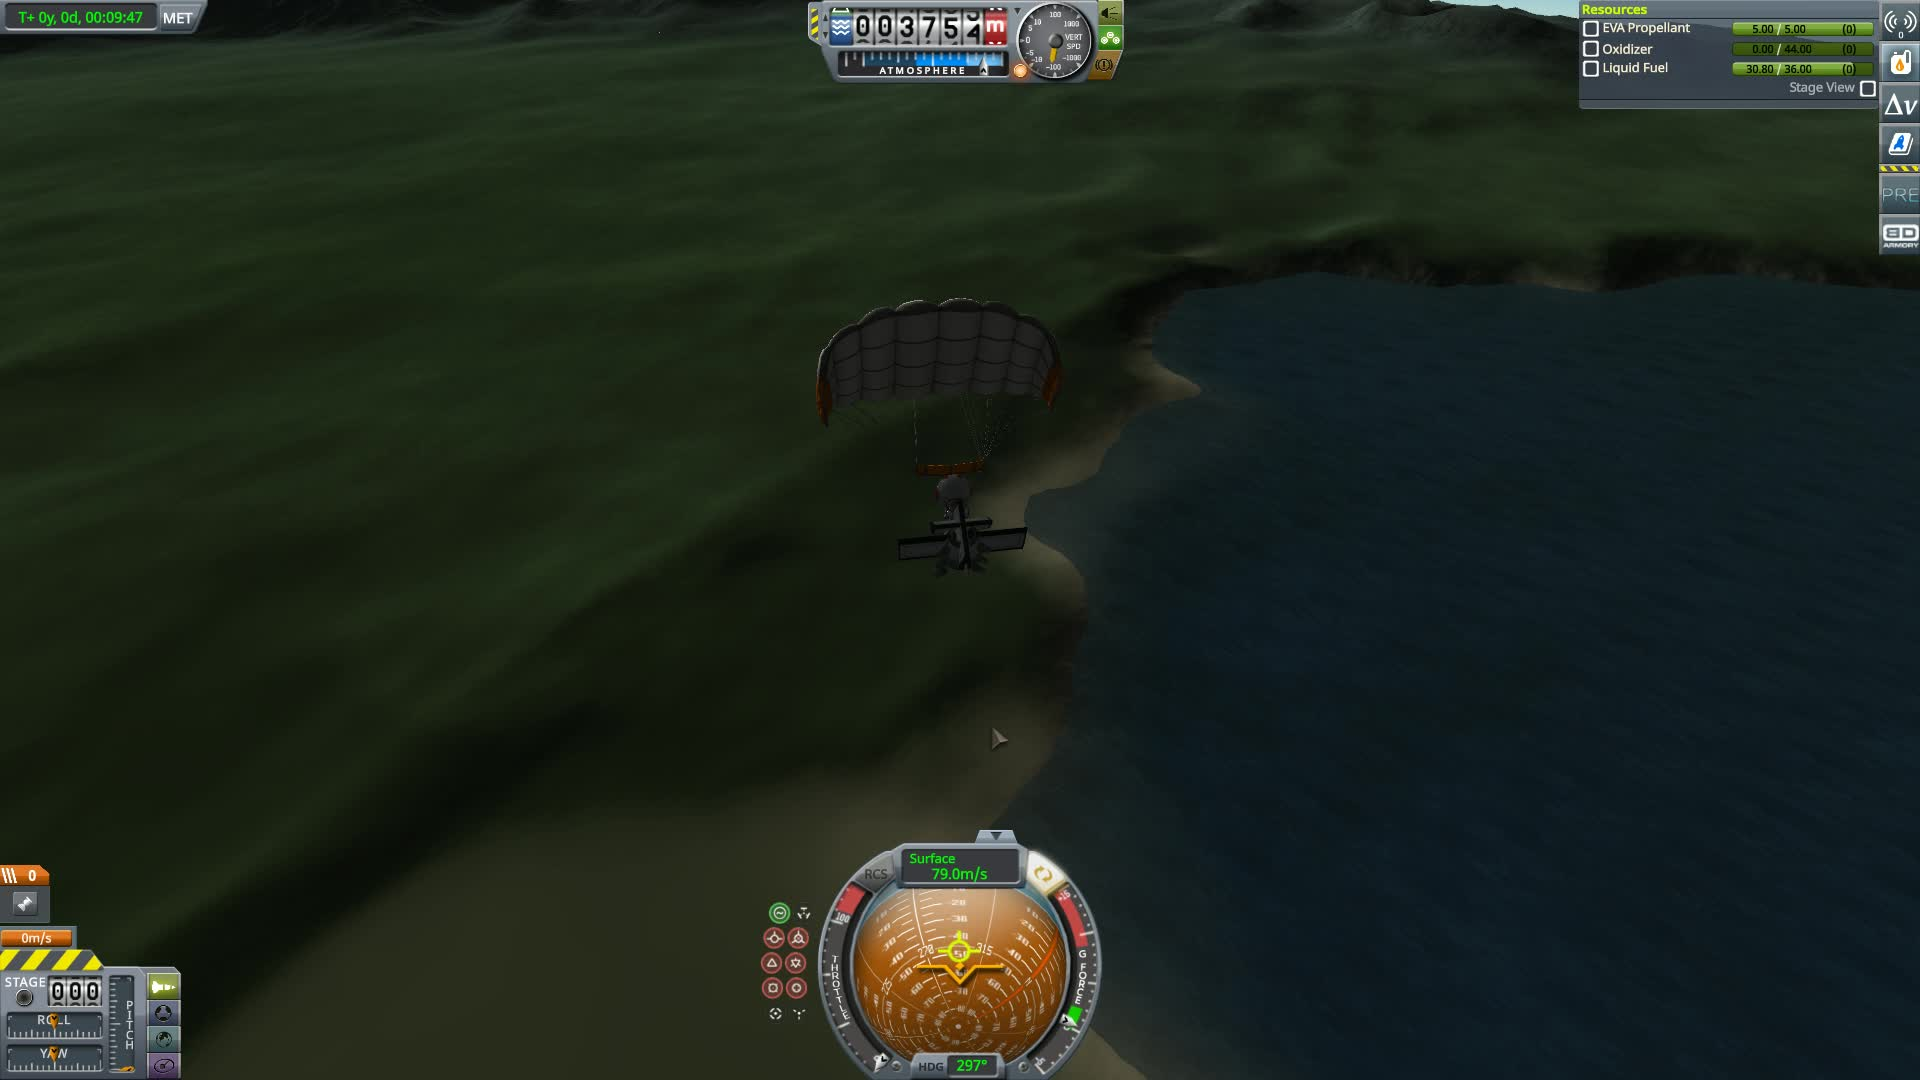 kerbalspaceprogram, Kerbal Space Program 2019.04.14 - 21.55.04.08.DVR GIFs